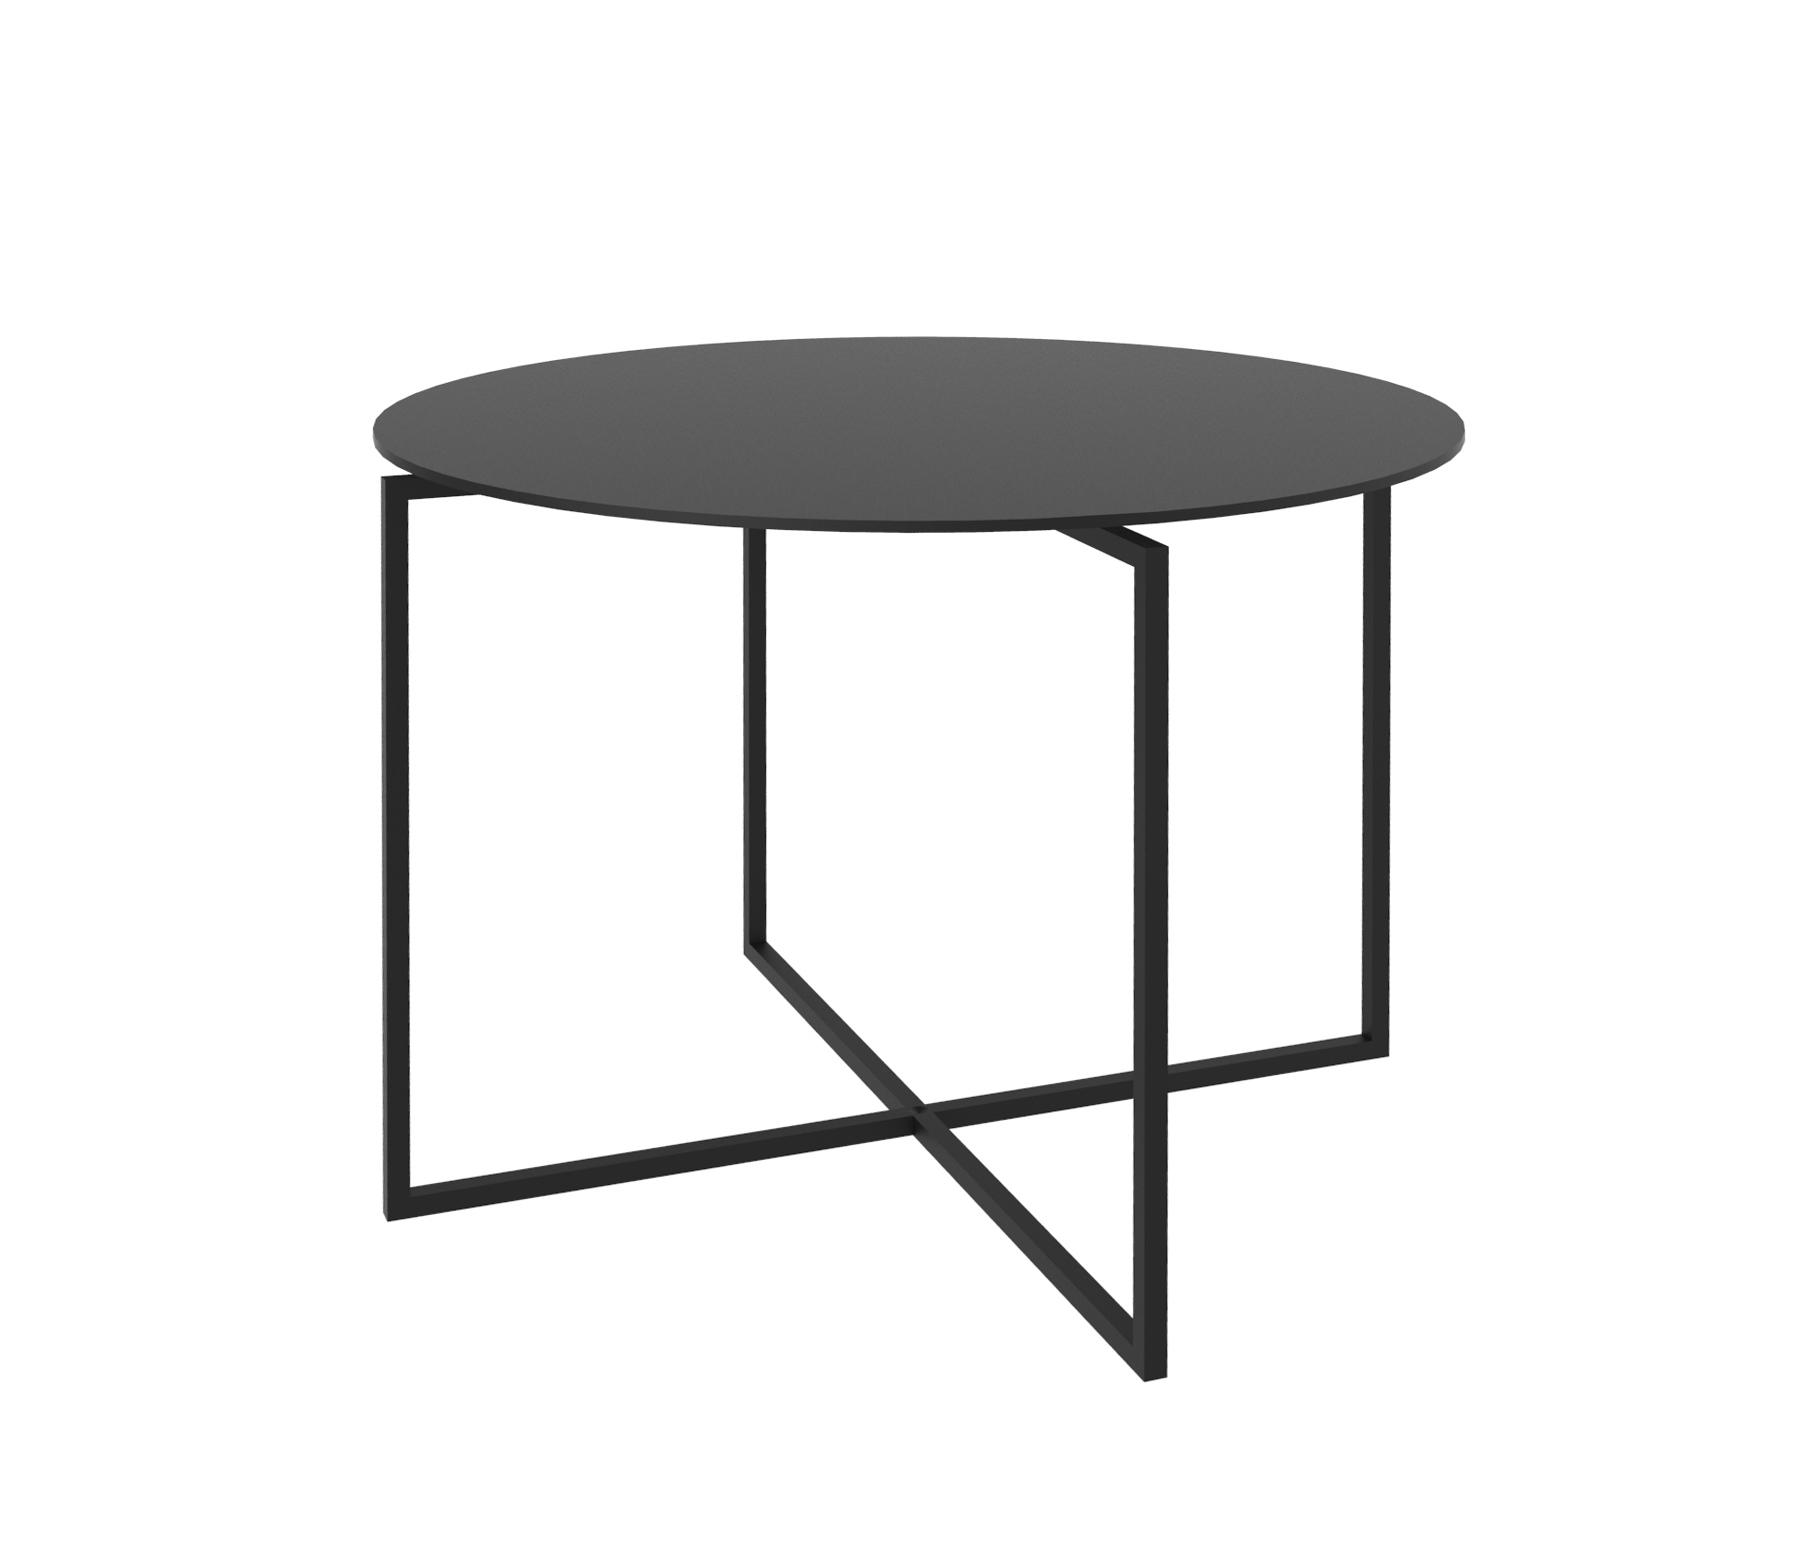 SMALL TABLE 40 Side tables from Paustian